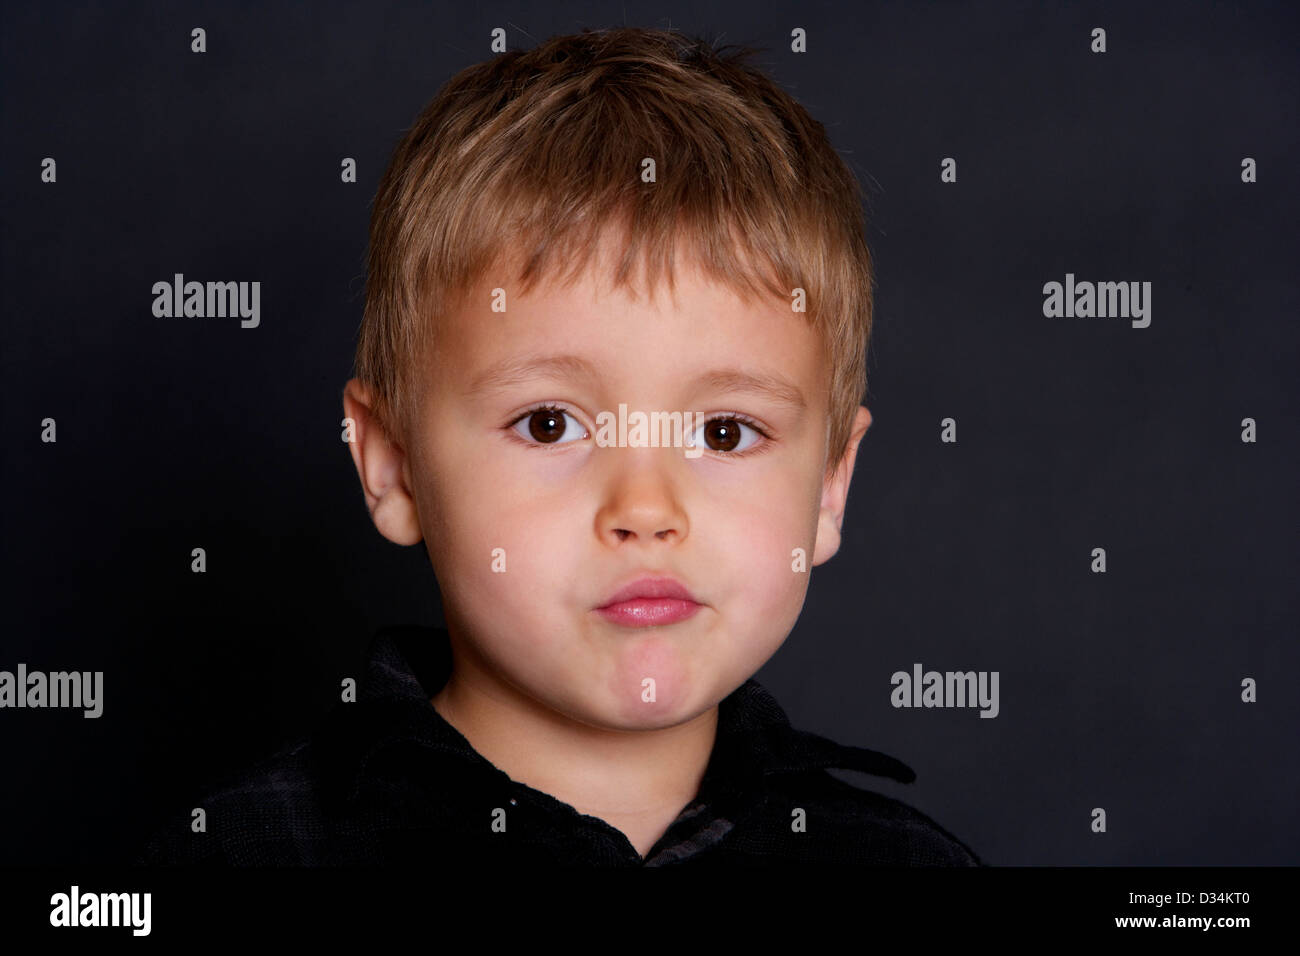 4 Year old boy looking at apprehensive and nervously camera with a black background behind - Stock Image